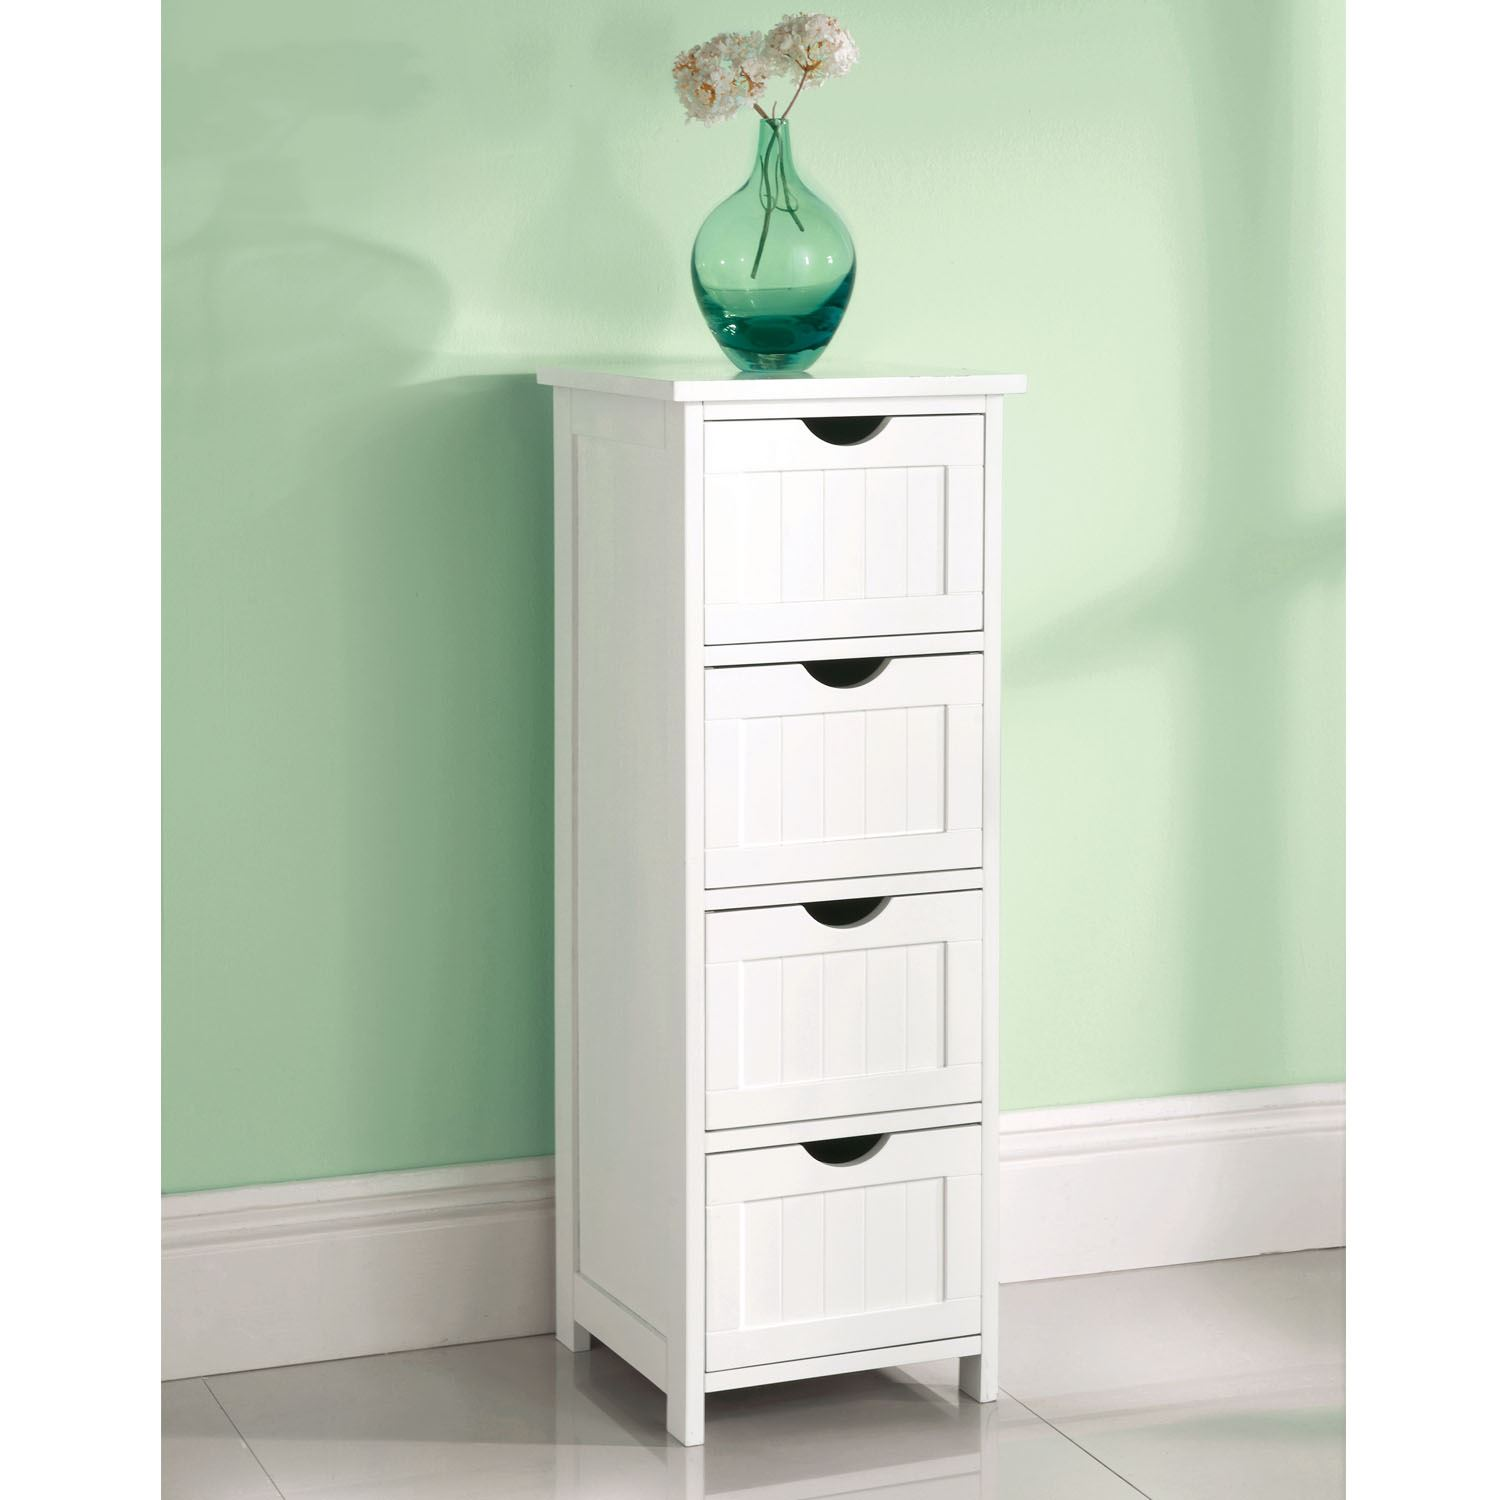 Free standing bathroom cabinet cupboard storage unit image result for mobile responsive images